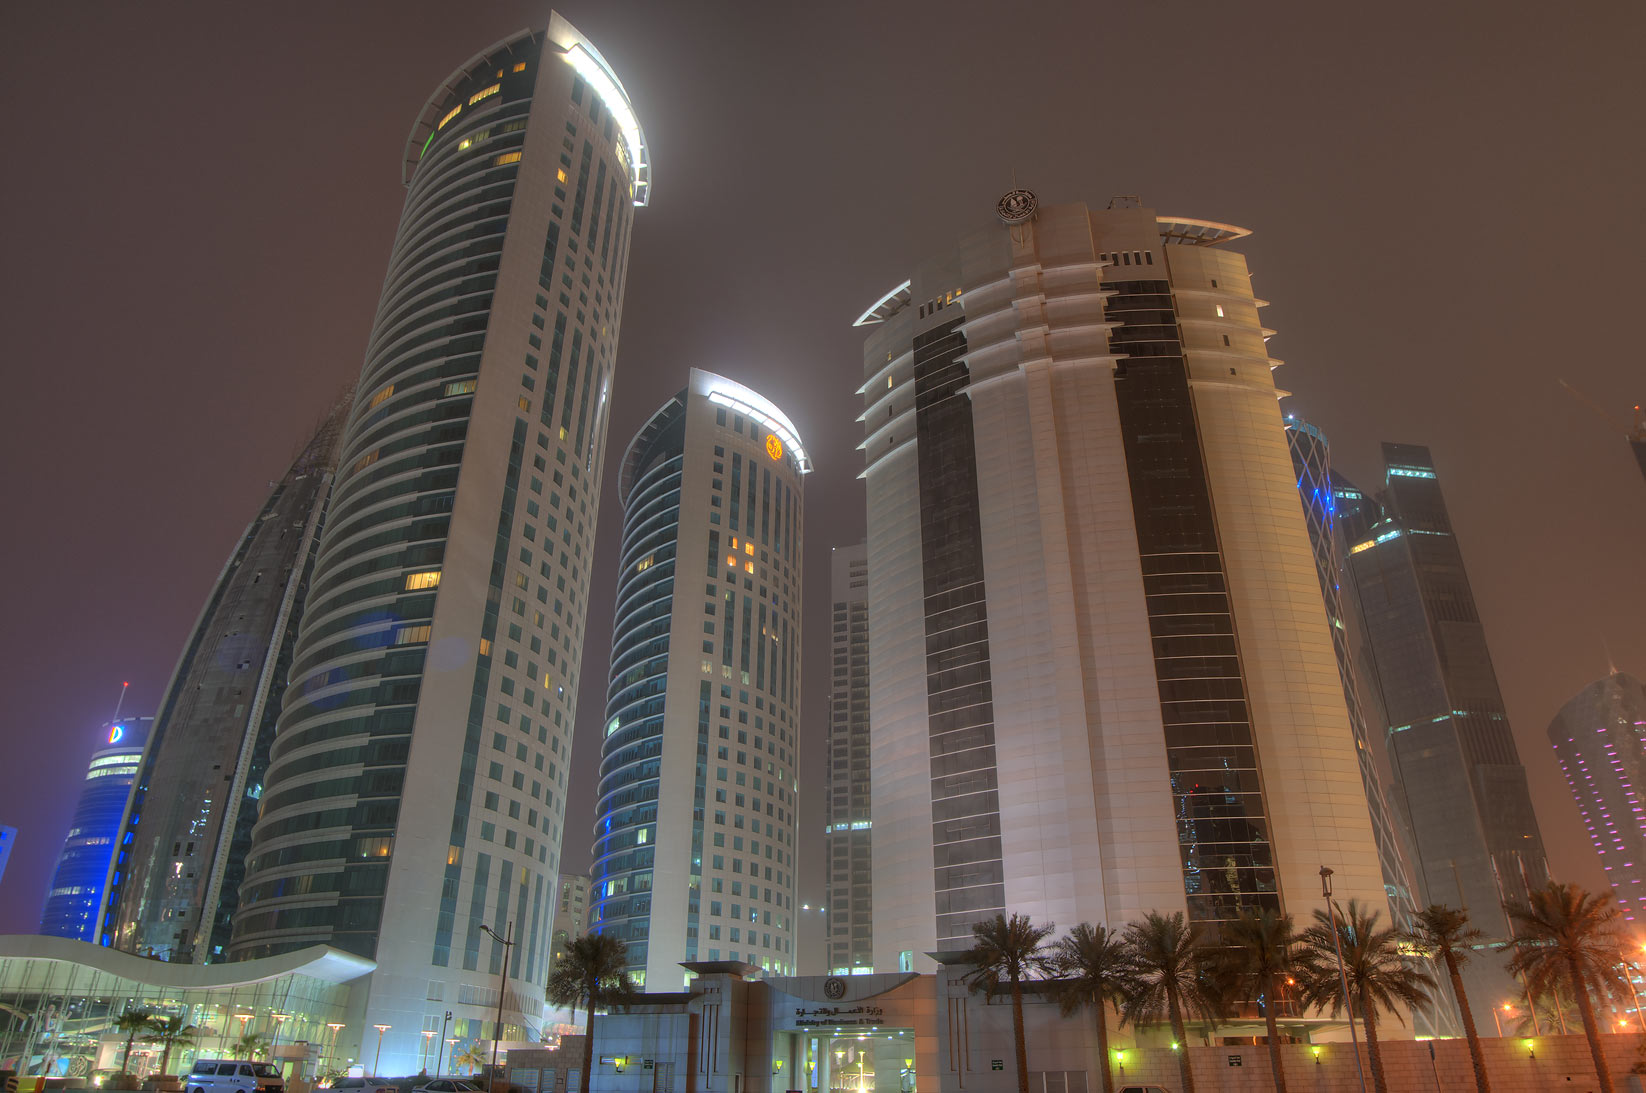 Al Fardan and Ministry of Economy towers in West...of City Center Mall. Doha, Qatar